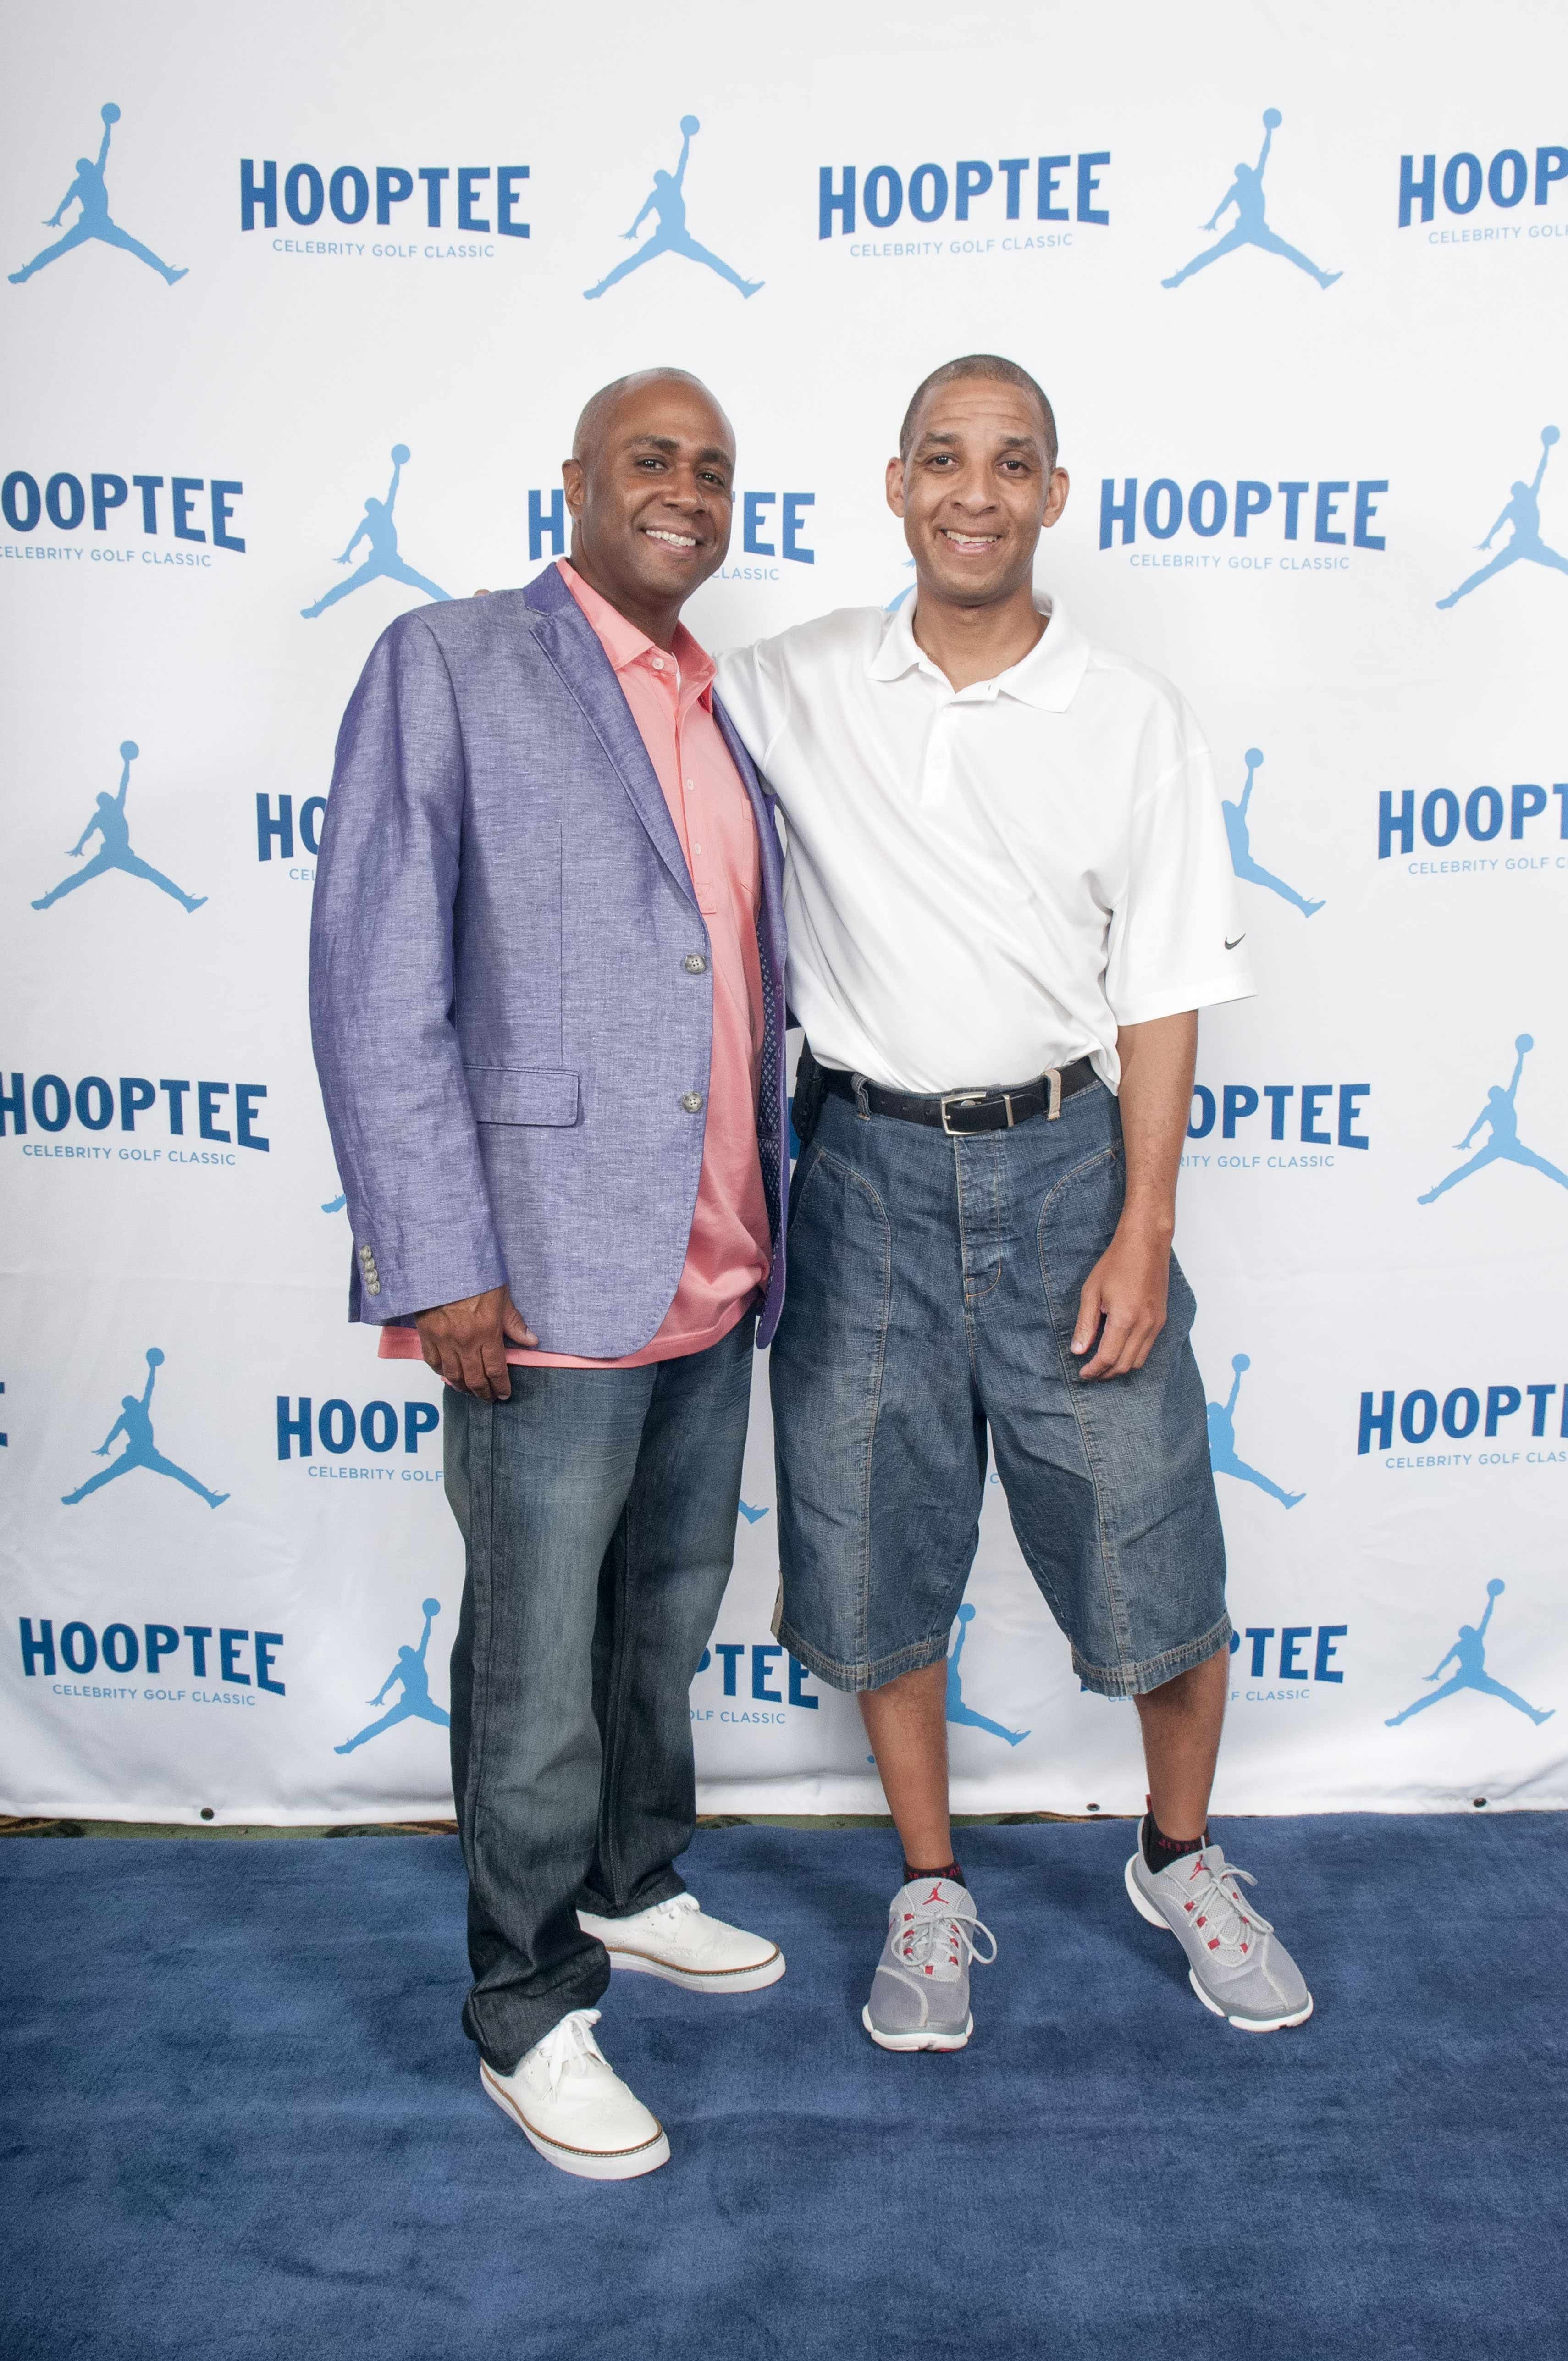 Hooptee 2014 photo gallery